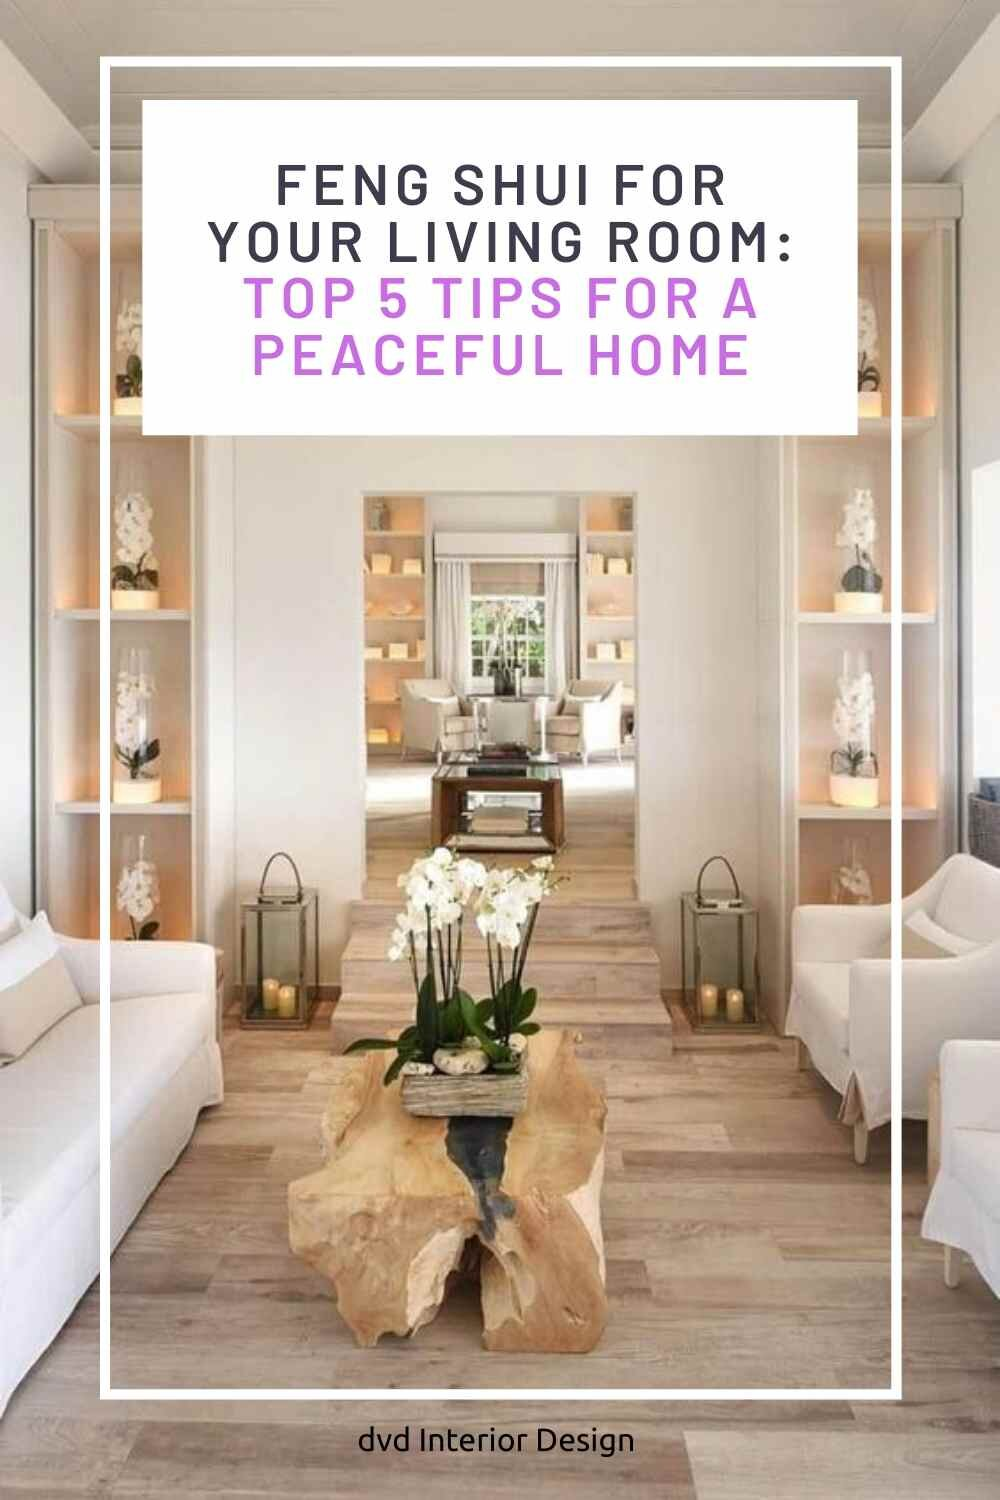 Feng Shui For Your Living Room Top 5, Living Room Feng Shui